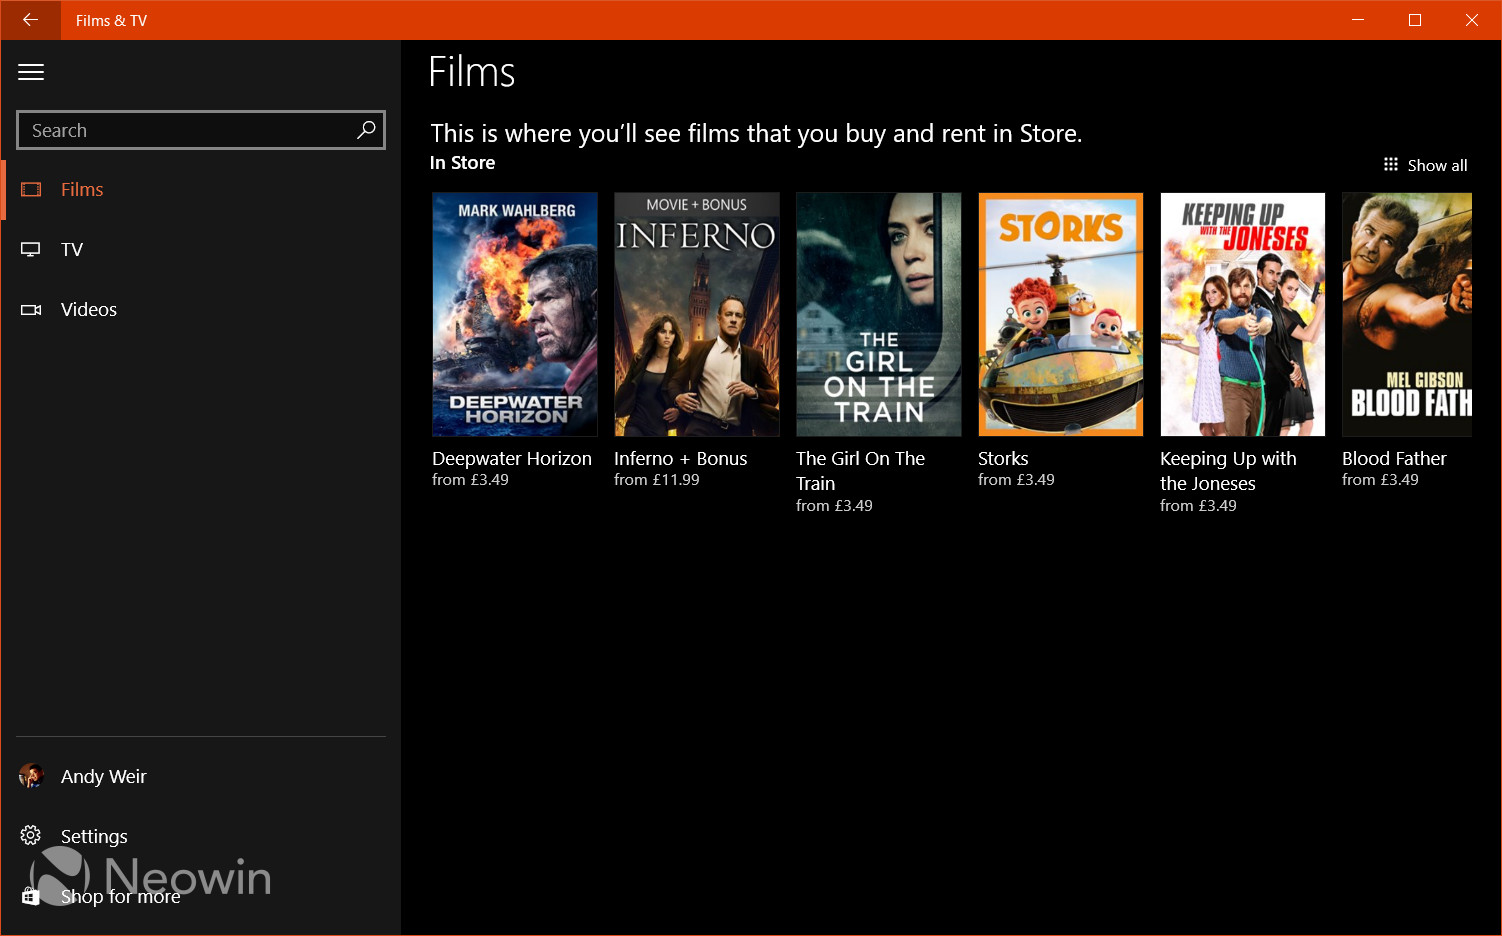 Movies \u0026 TV app gets a new look on Windows 10 PCs and phones, now